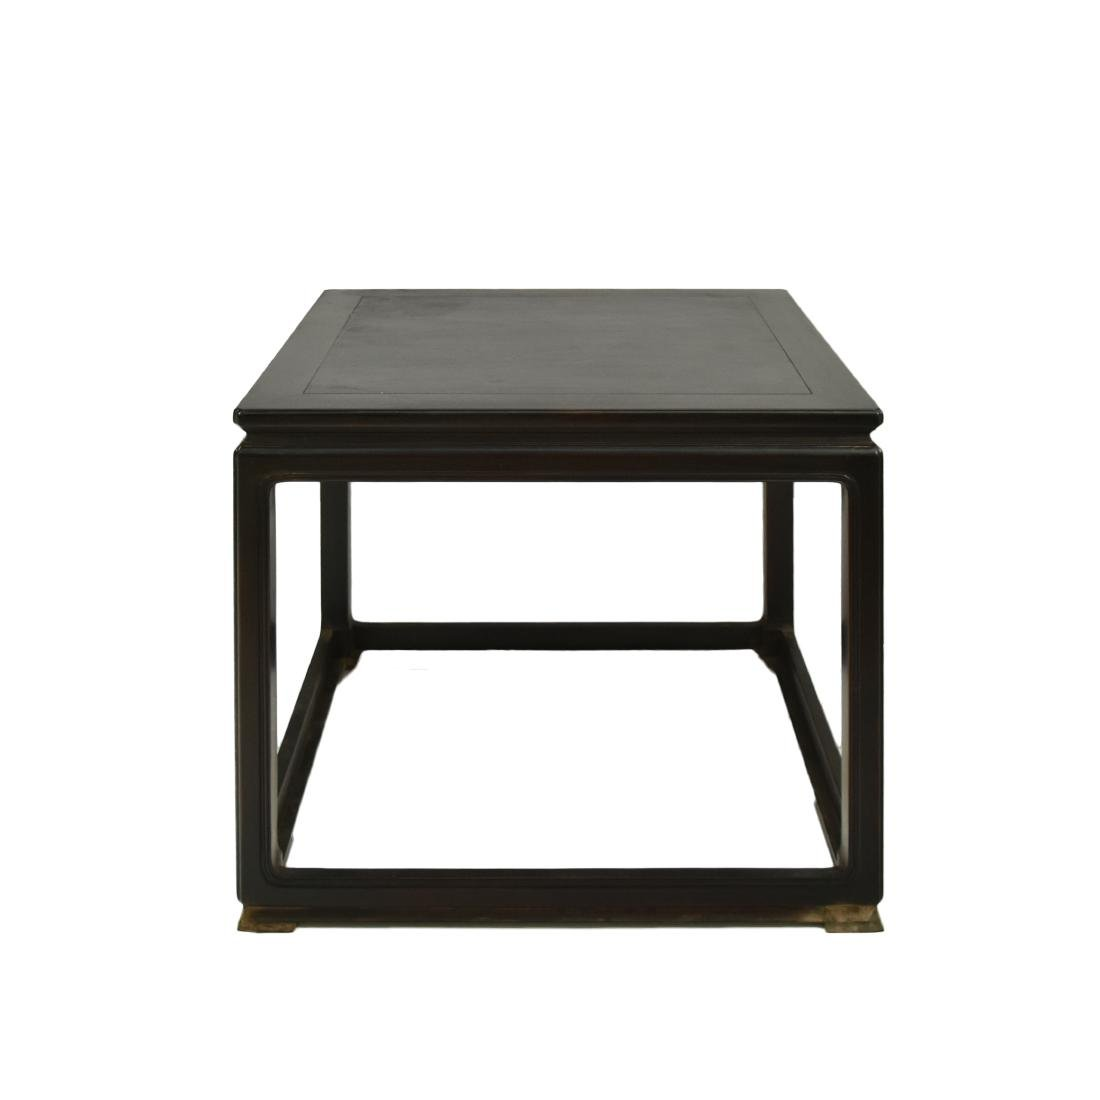 ANTIQUE ZITAN SQUARE TABLE WITH BOX SKETCHERS